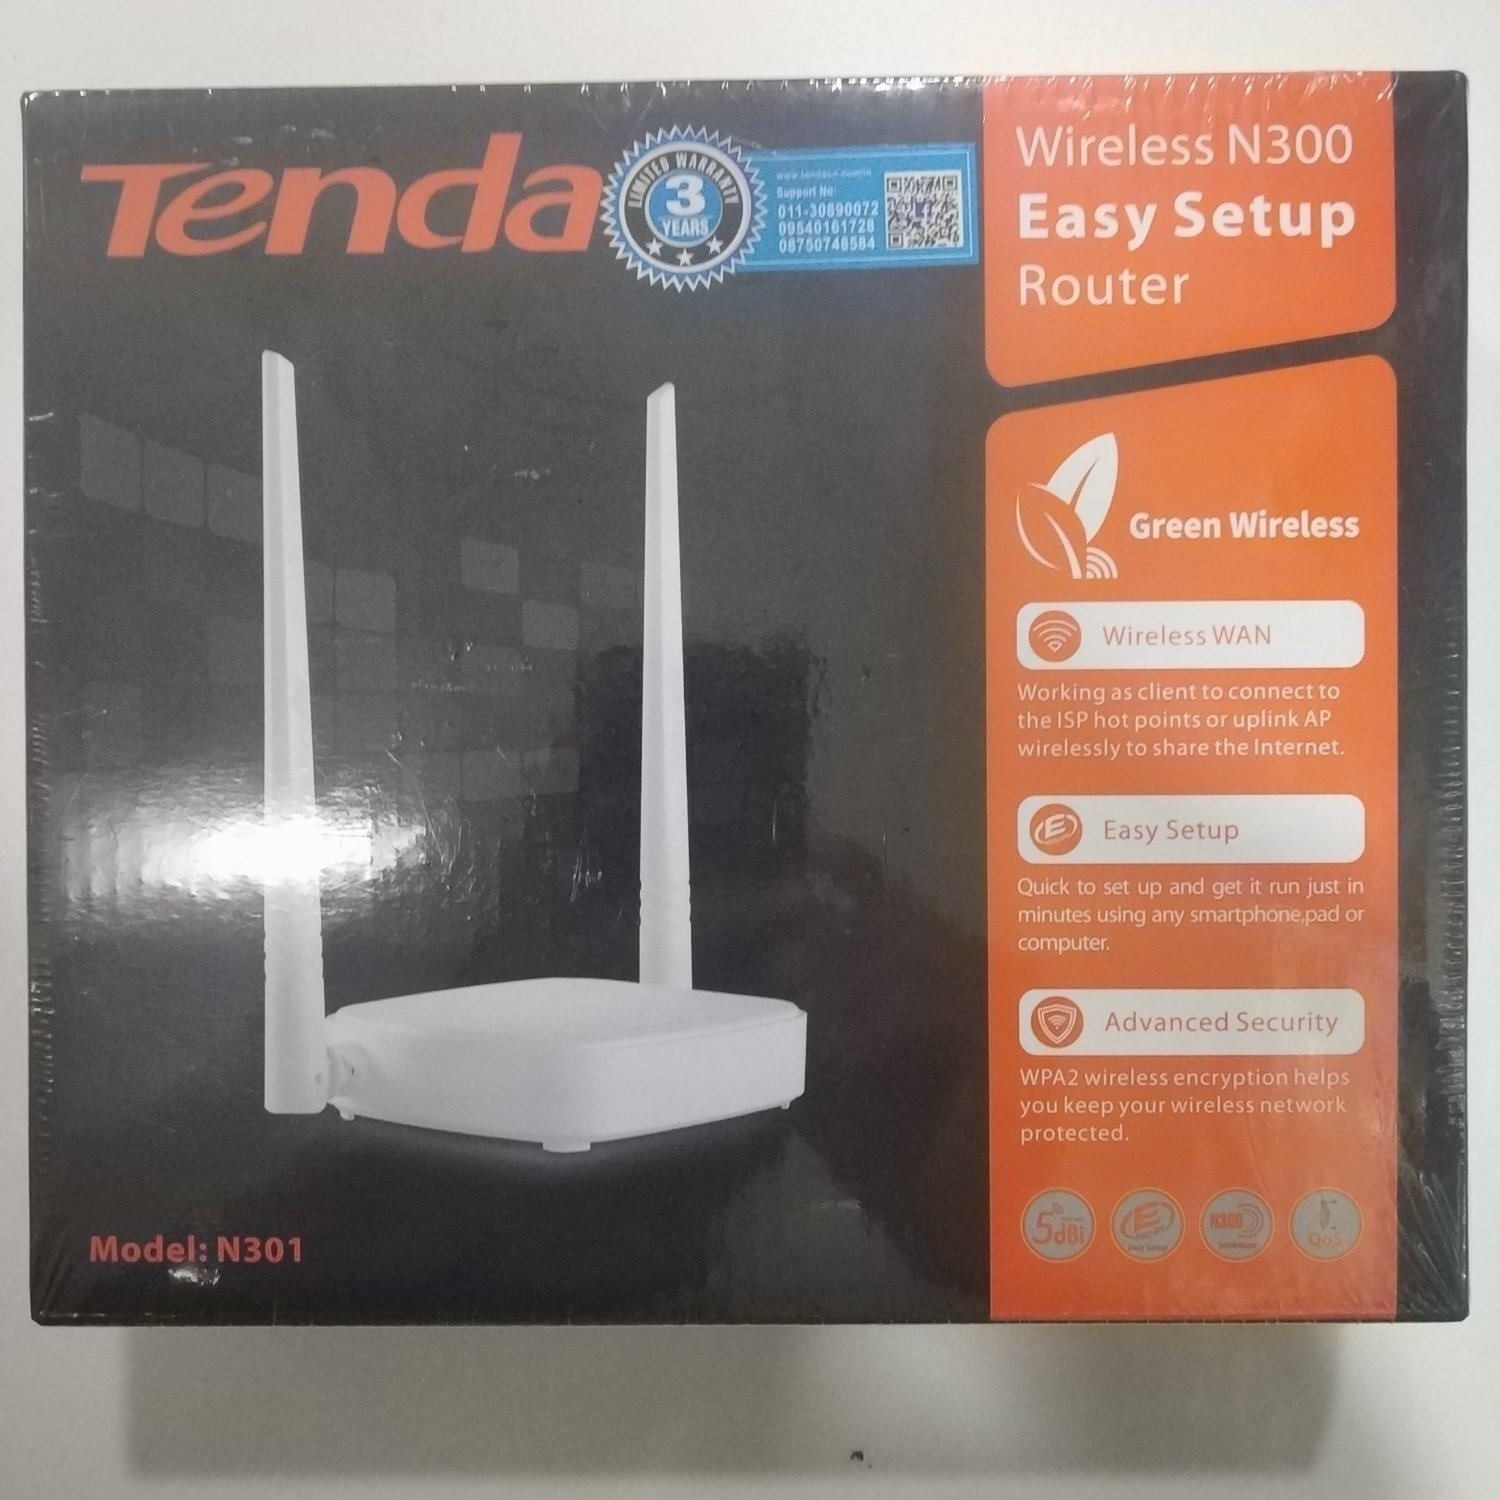 Tenda N301 Wireless-N300 Easy Setup Router, Rs 675